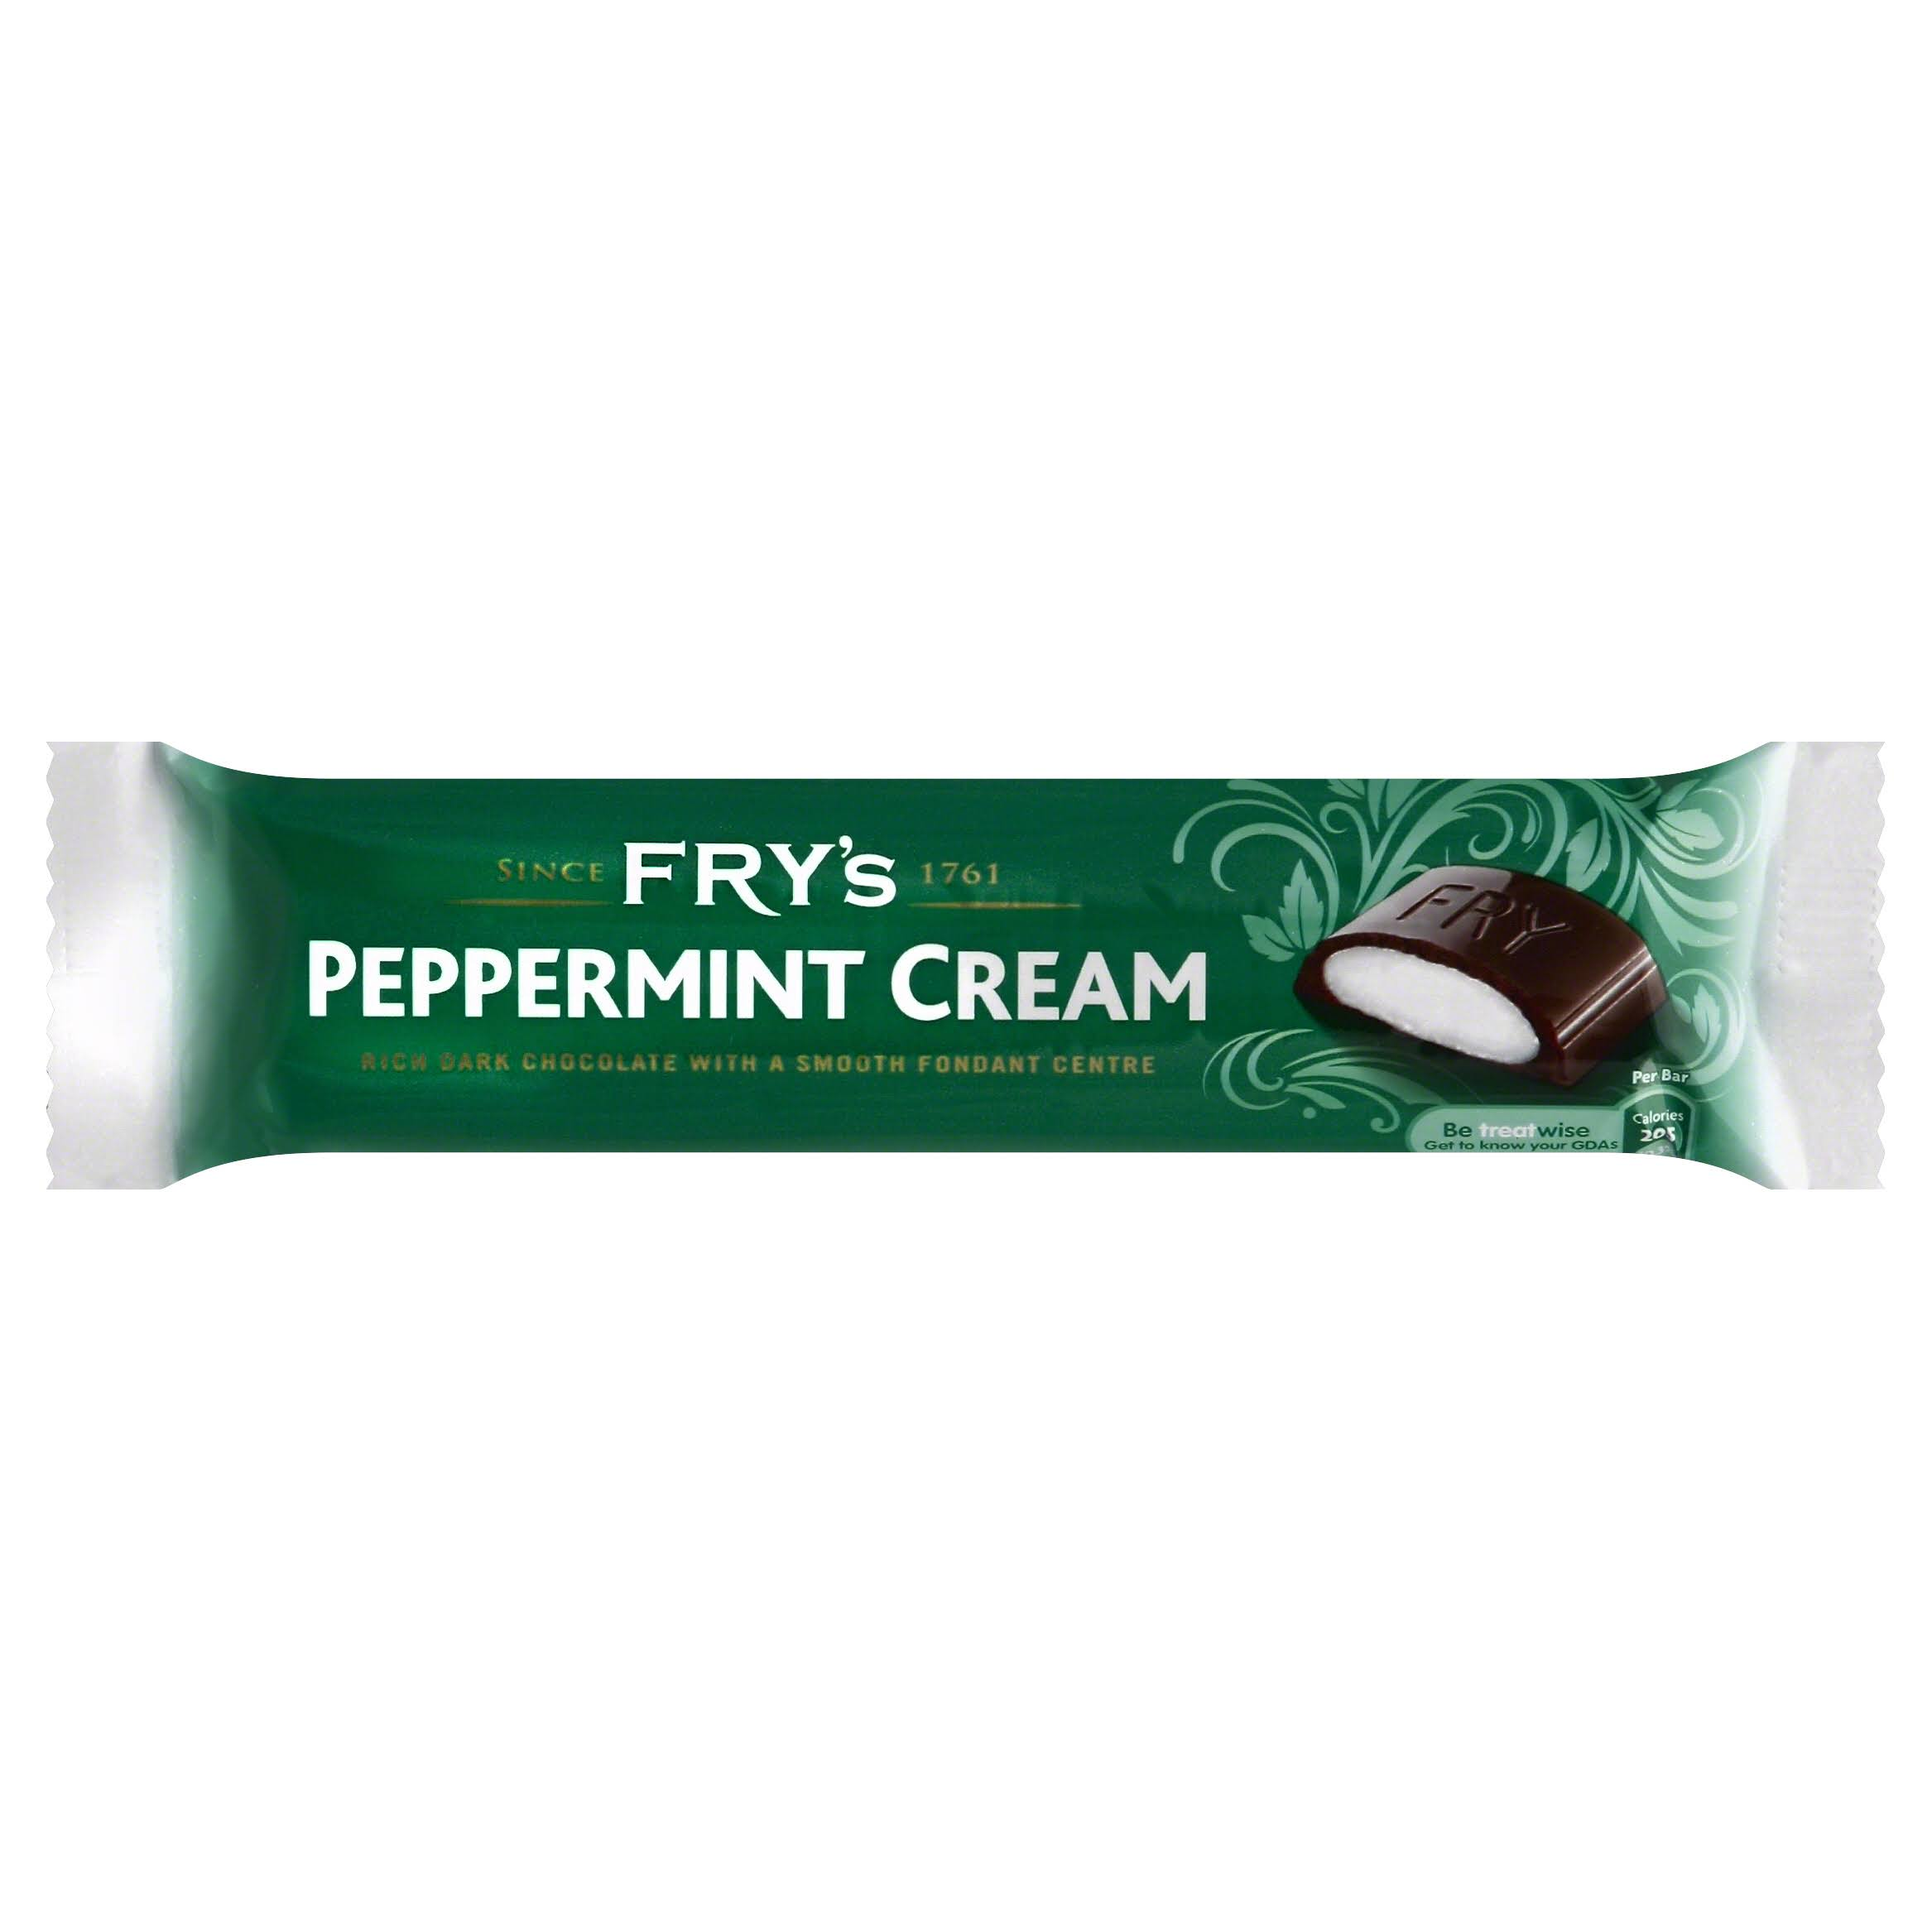 Frys Peppermint Cream Chocolate Bar